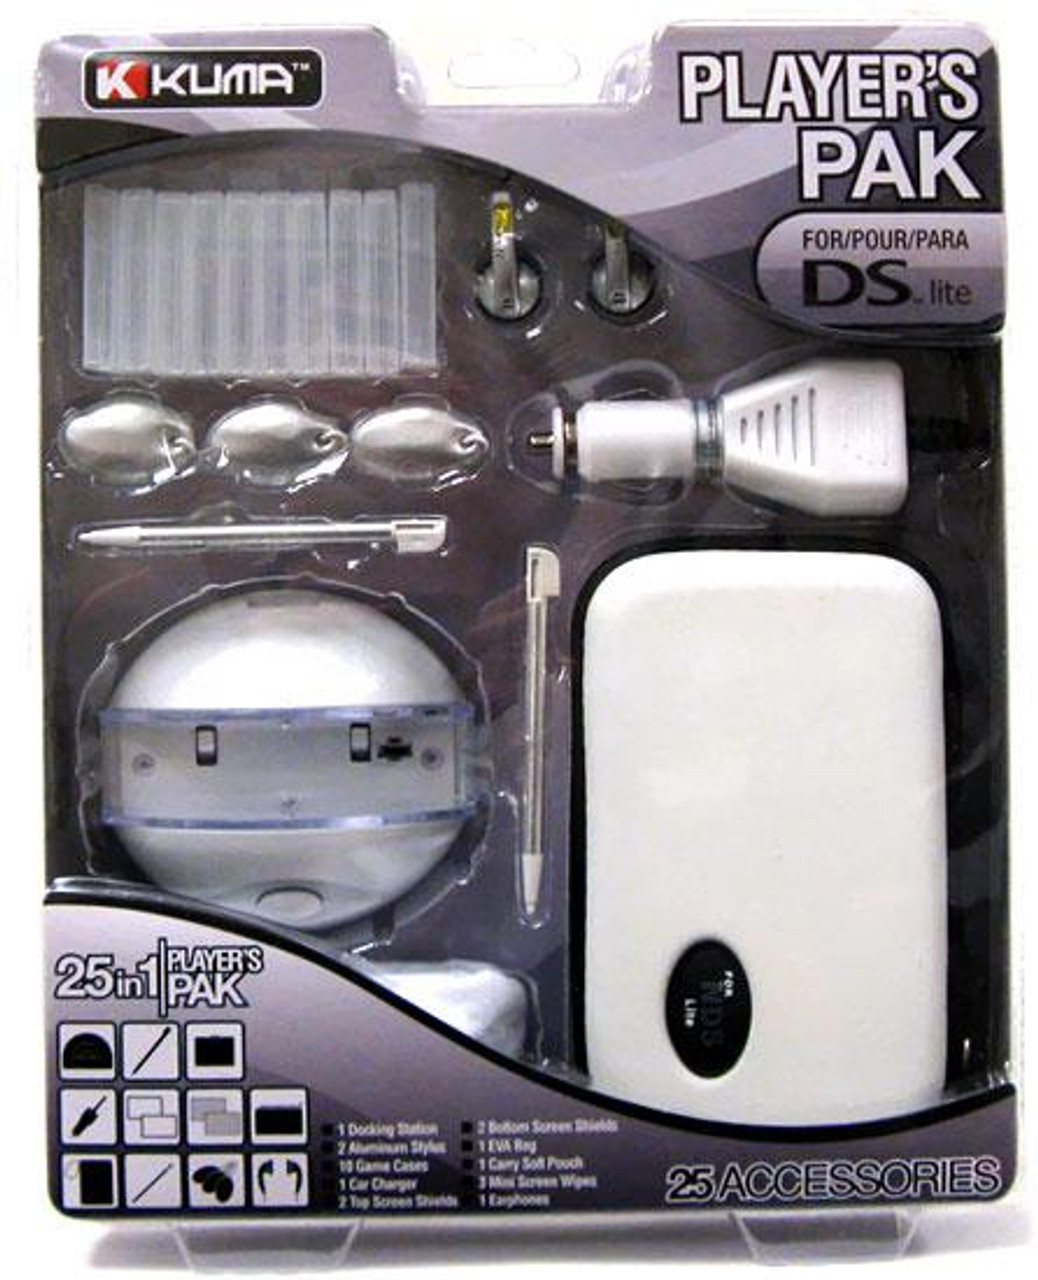 Nintendo DS 25 in 1 Players Pak [White]